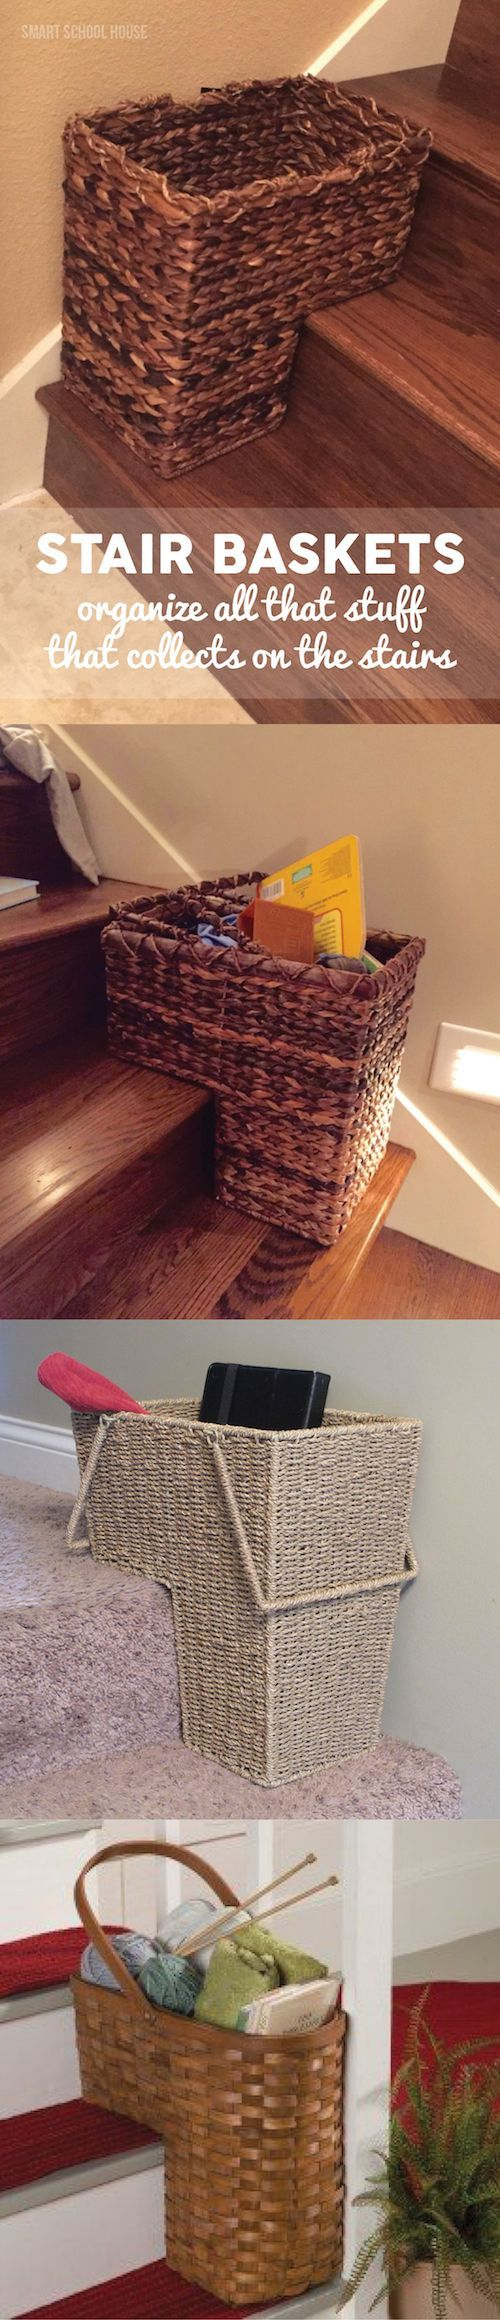 Stair Baskets! Use these to organize all of that stuff that collects on the stairs. Here's where to get them!